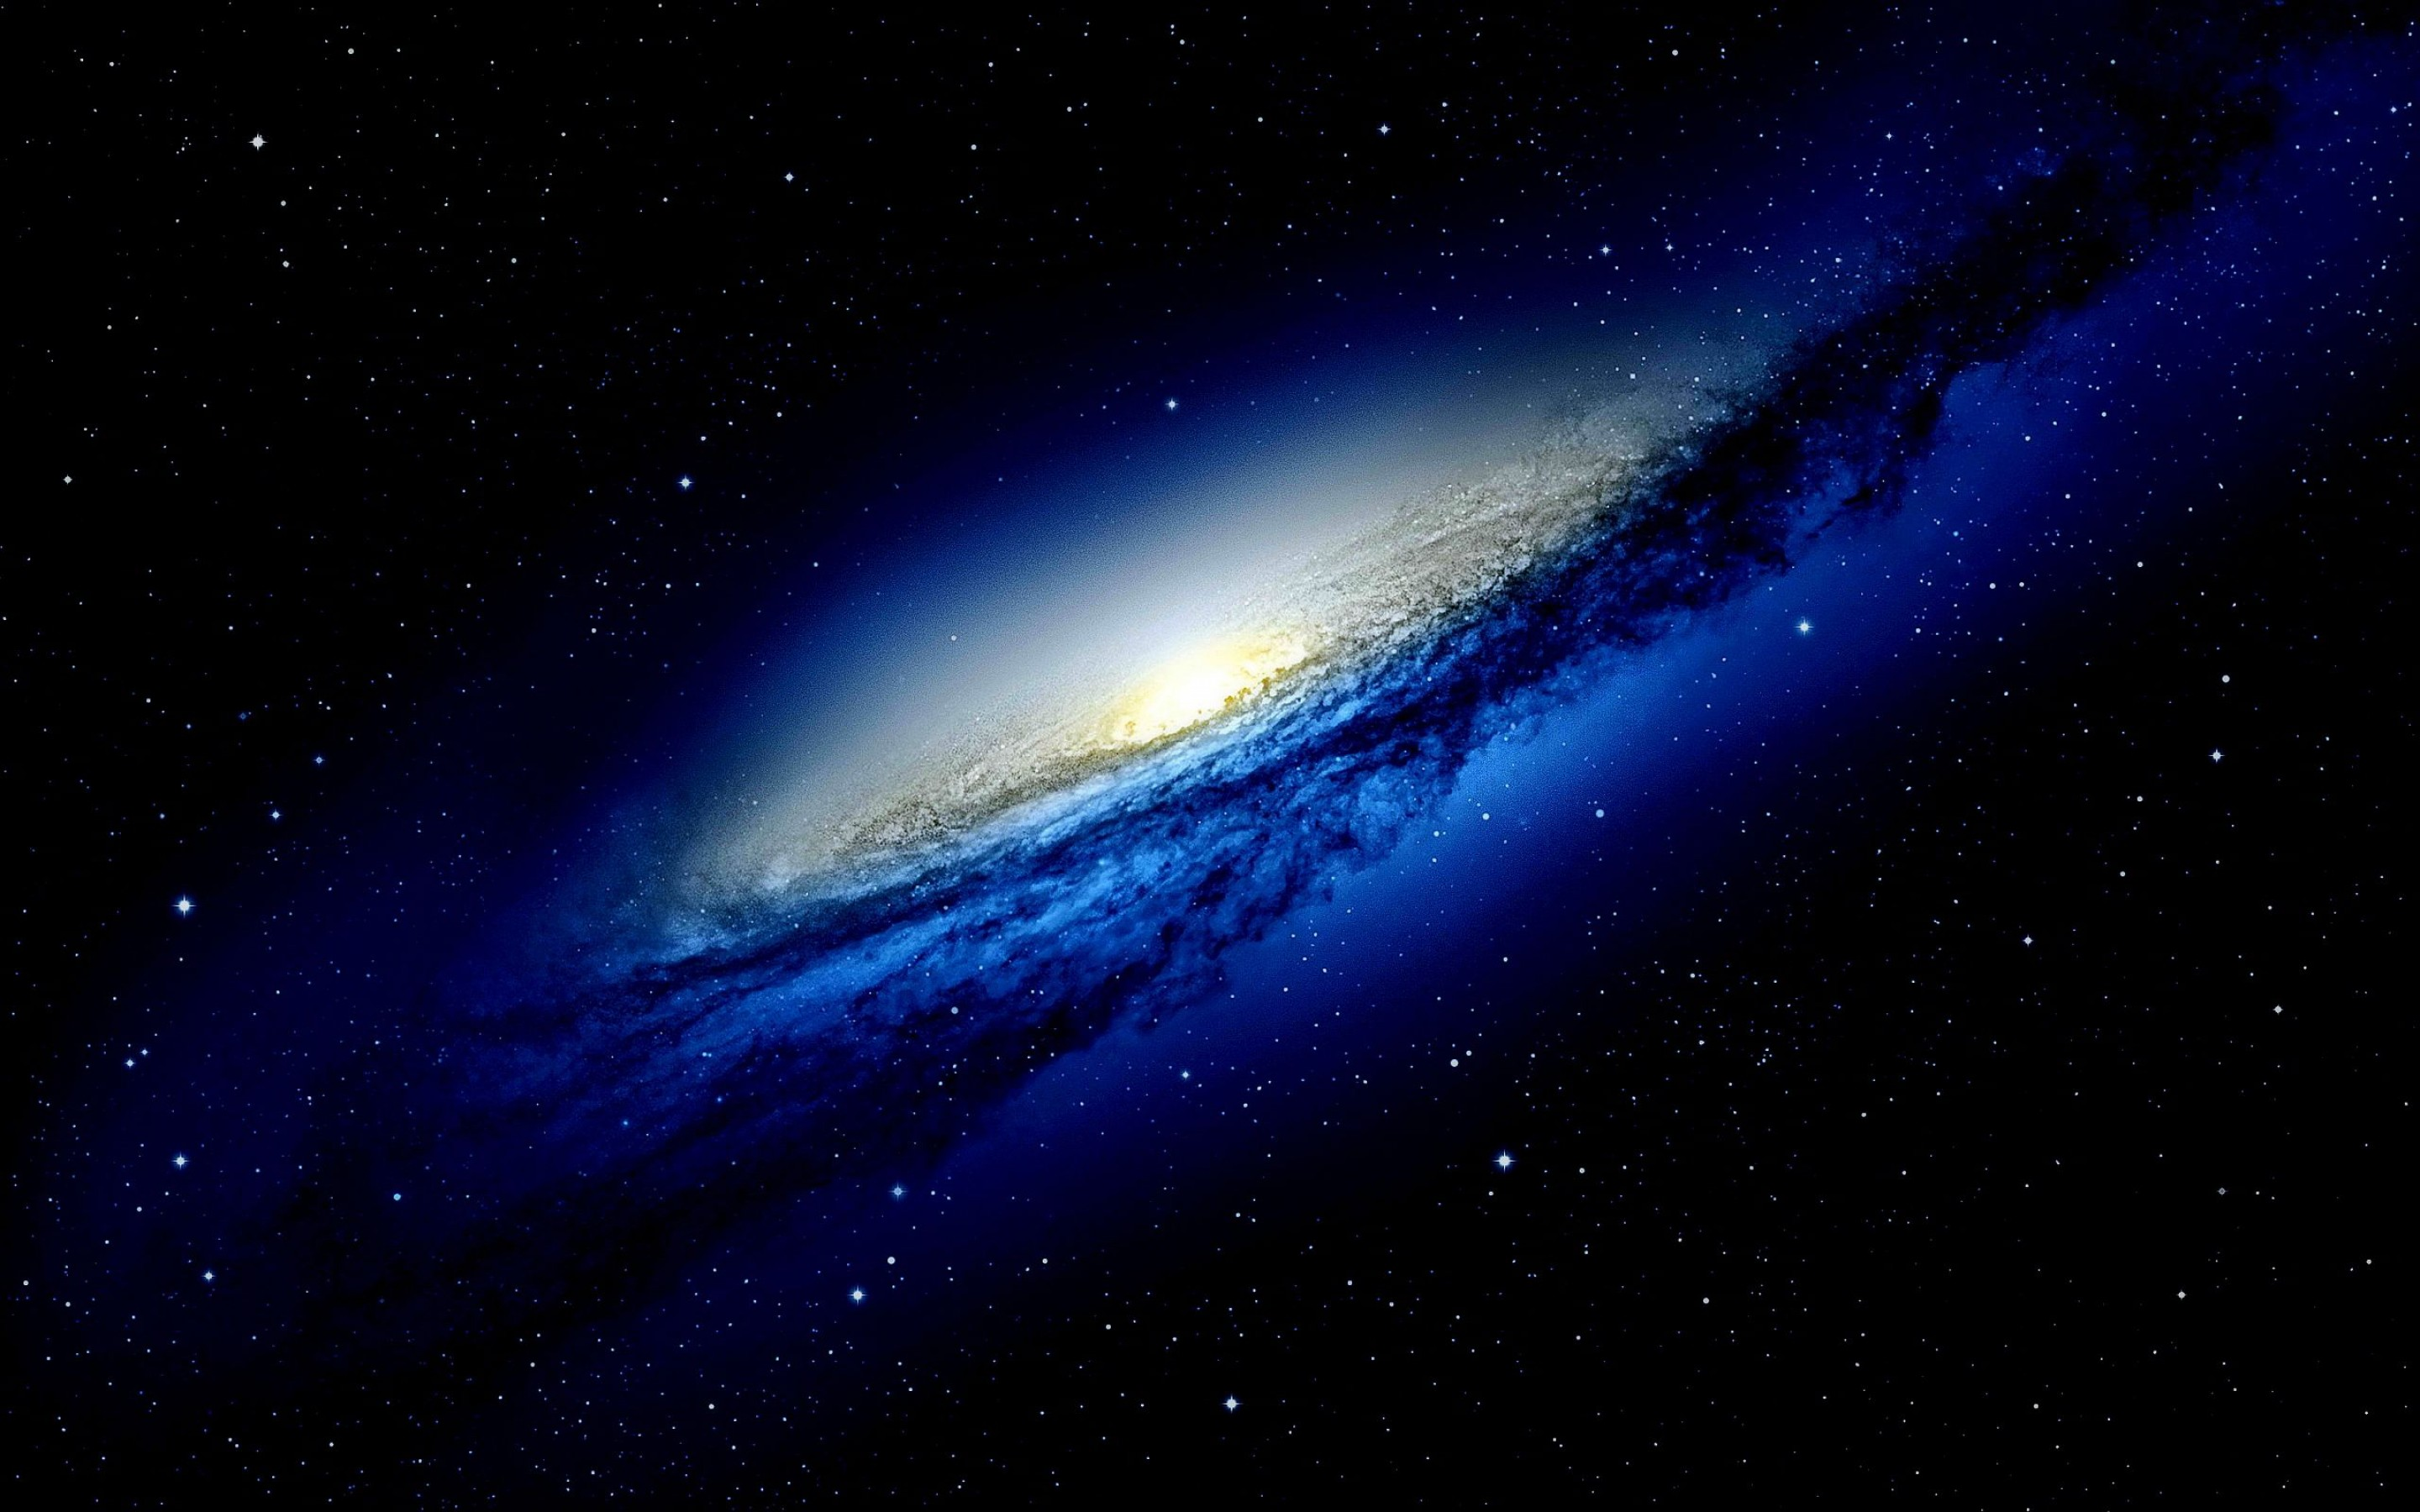 We've gathered more than 5 million images uploaded by our users and sorted. 20 Awesome Galaxy Wallpapers HD - The Nology